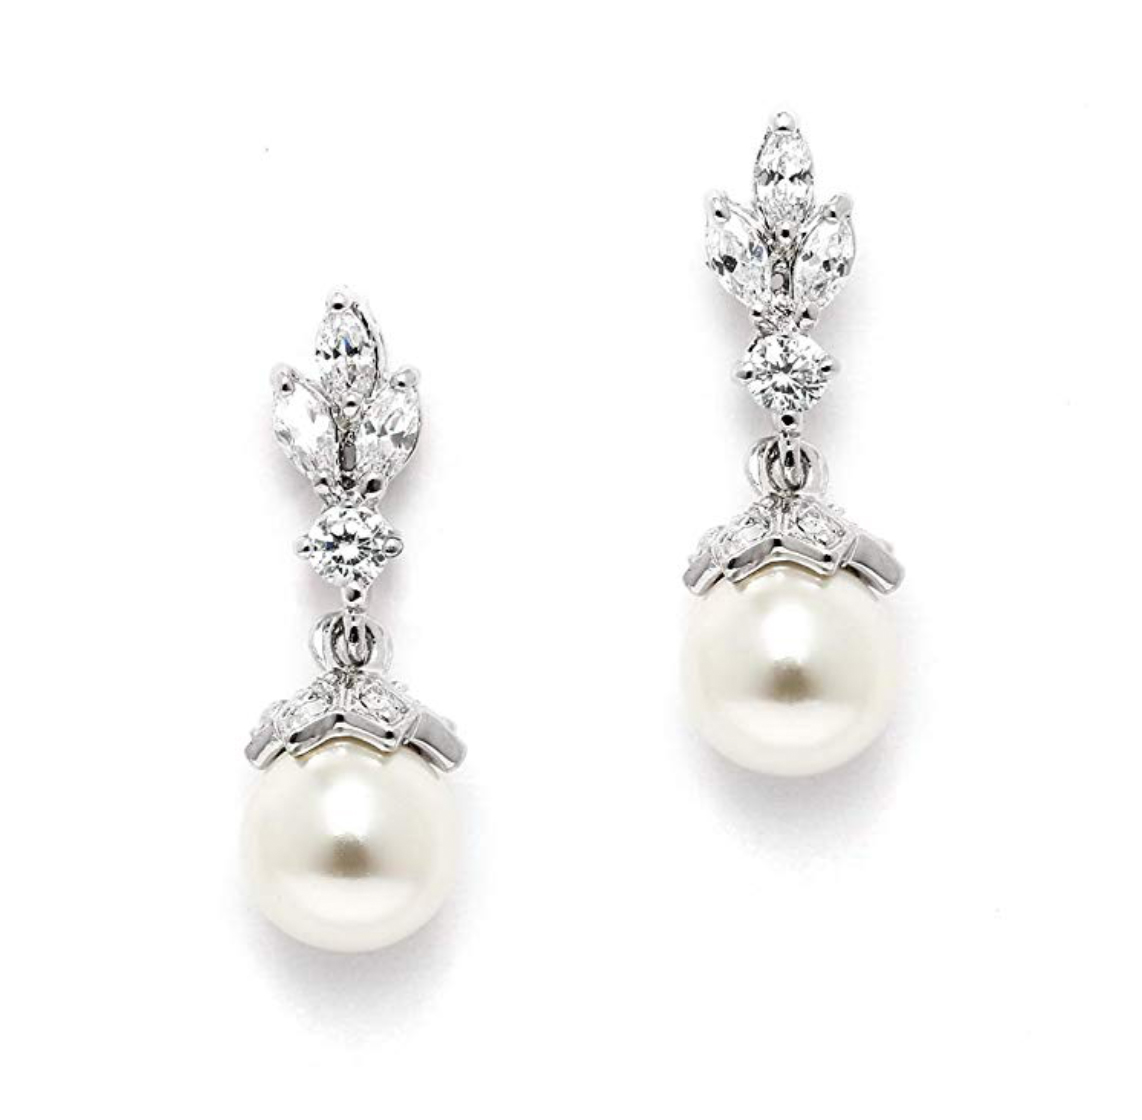 Vintage-Inspired Pearl Drop Earrings